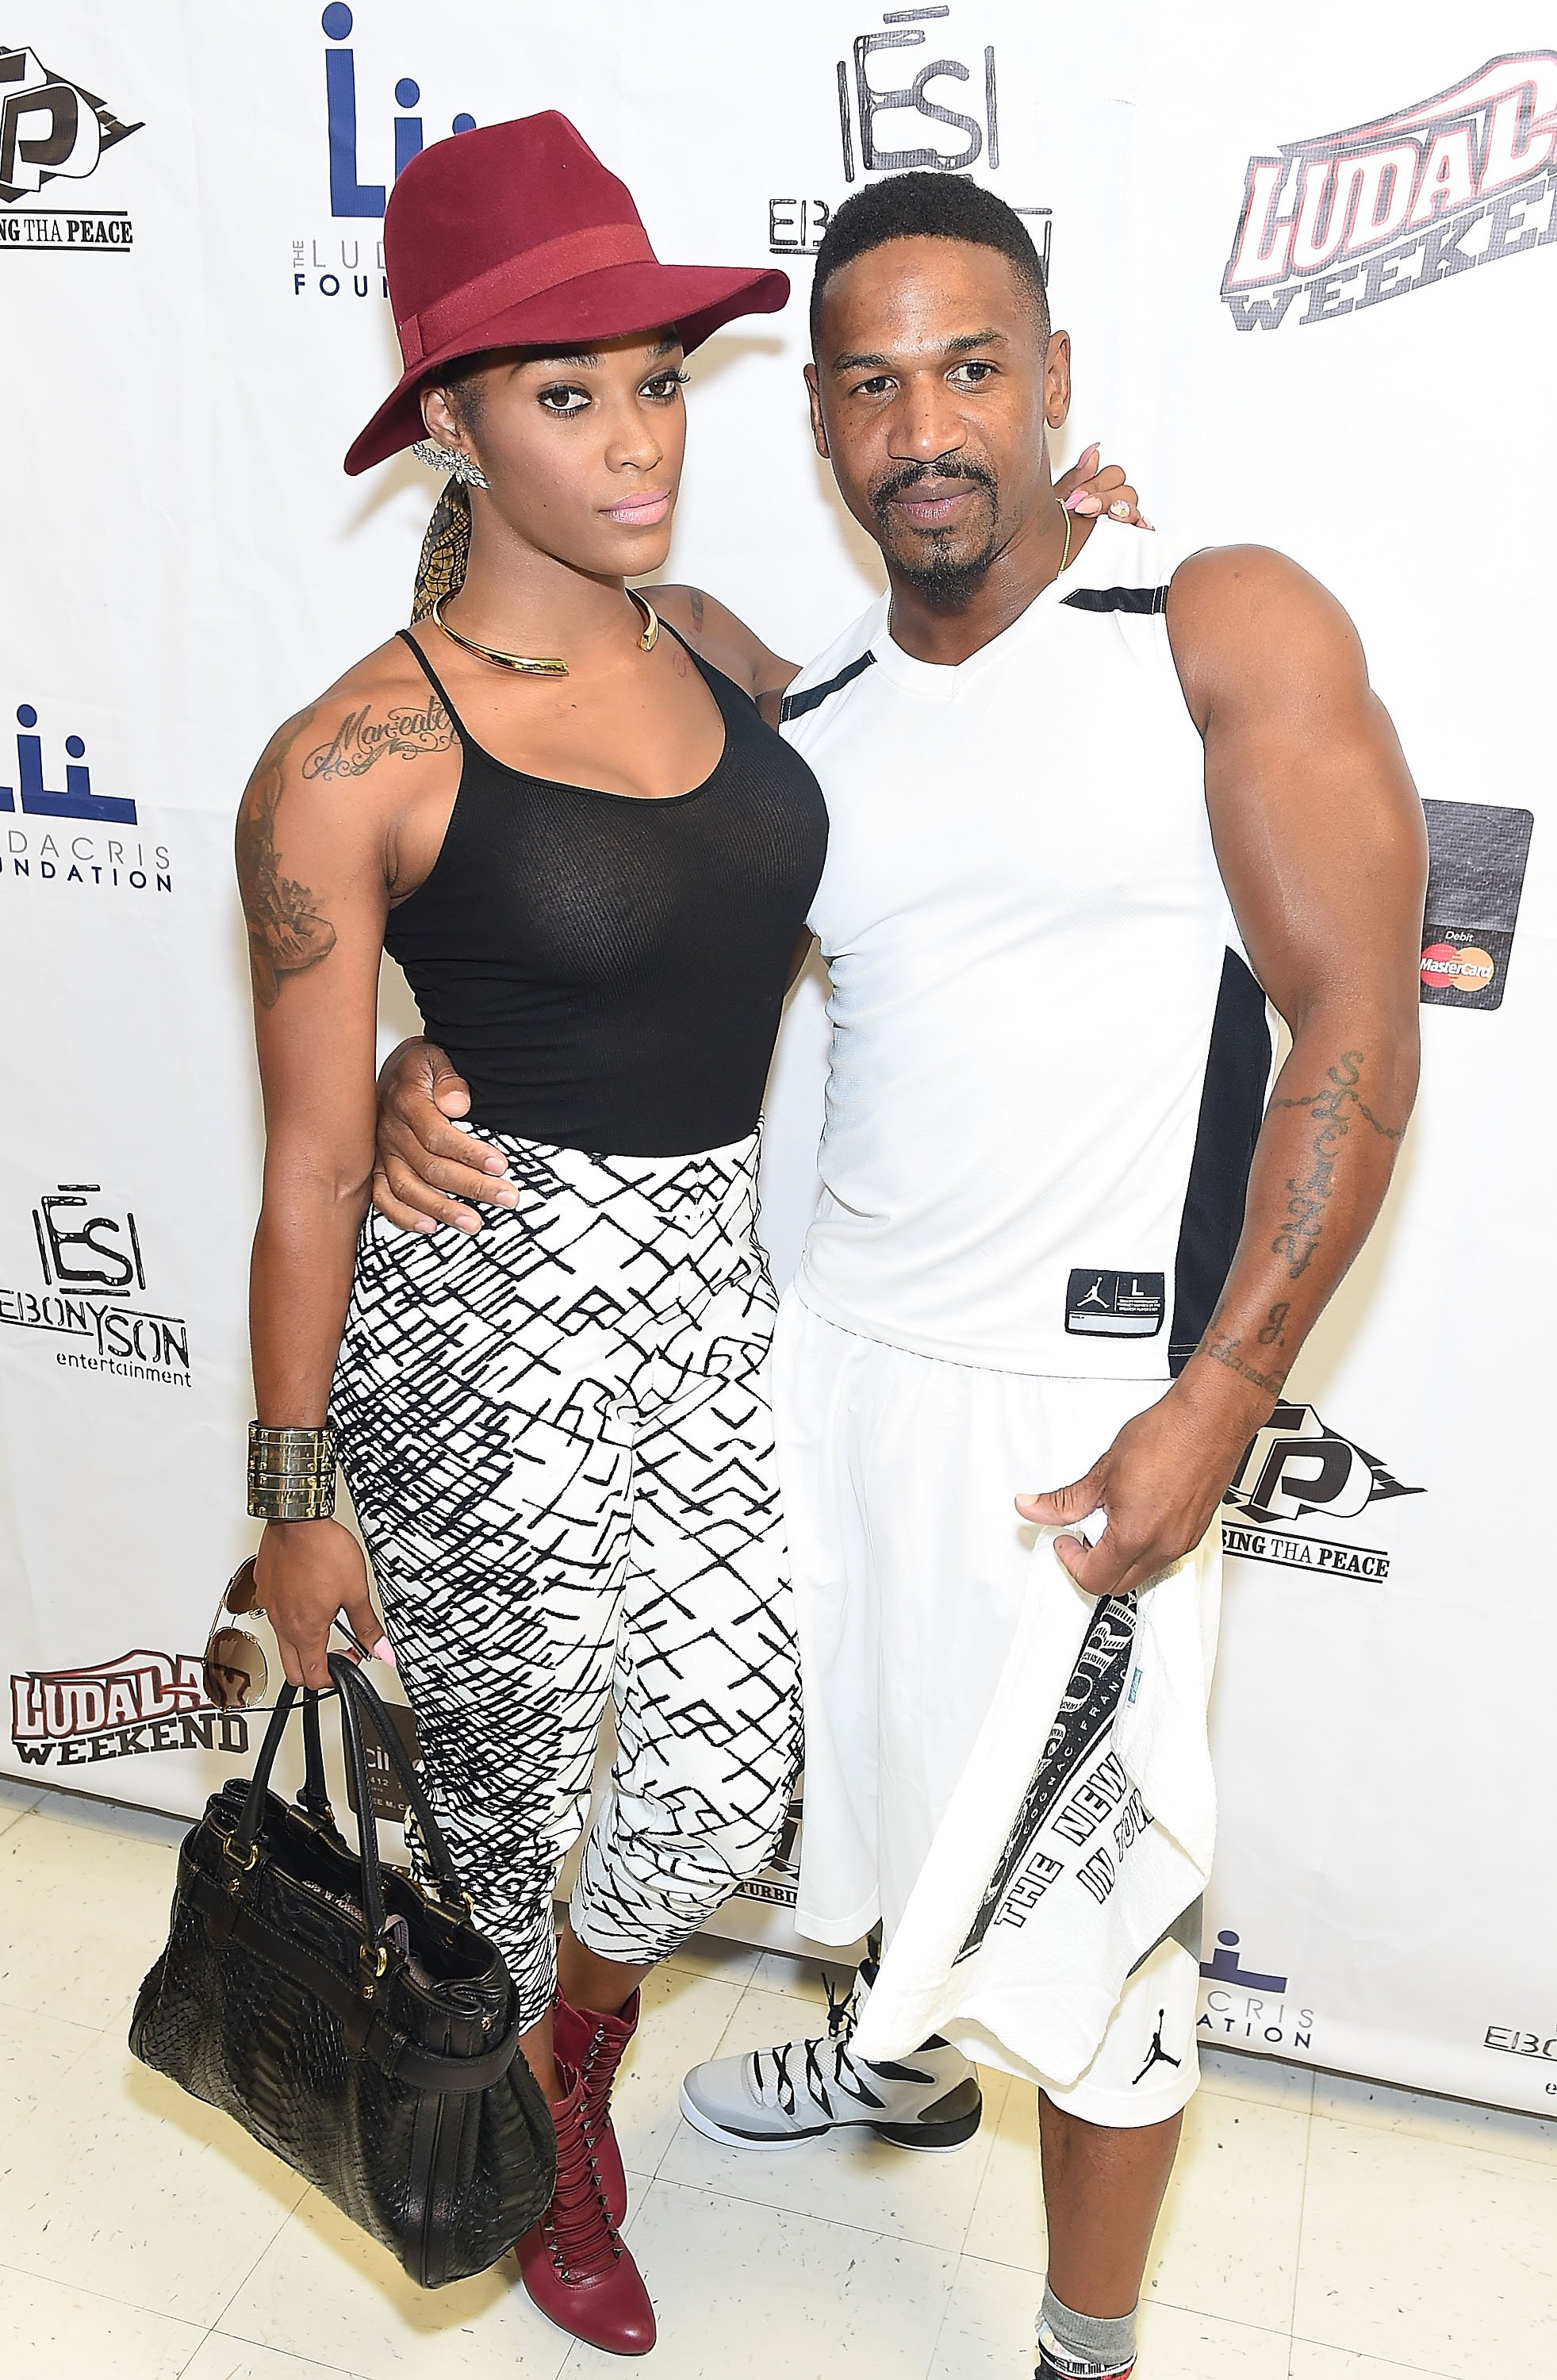 Joseline Hernandez and Stevie J attends the LudaDay Celebrity Basketball Game at Georgia State University Sports Arena on August 31, 2014. | Source: Getty Images